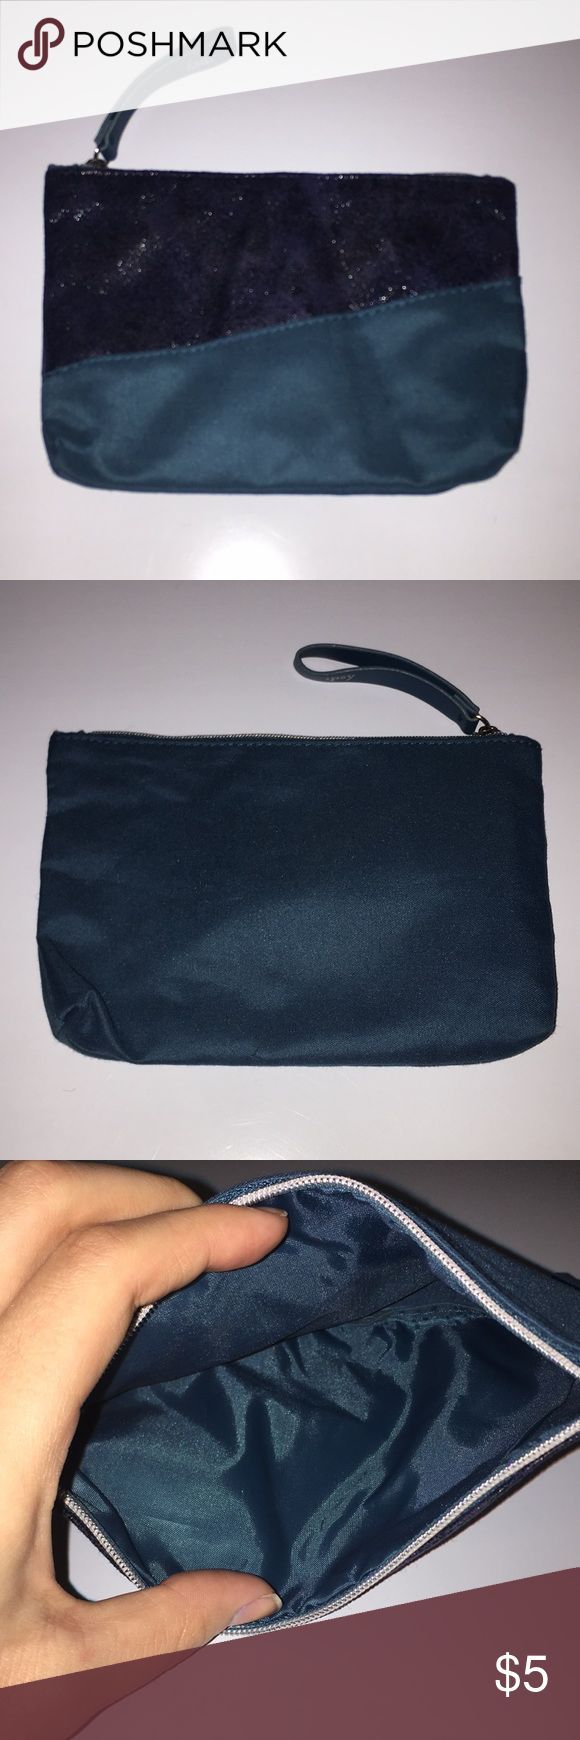 Ipsy Makeup Bag Soft Blue Ipsy Makeup Bag ipsy Bags Cosmetic Bags & Cases